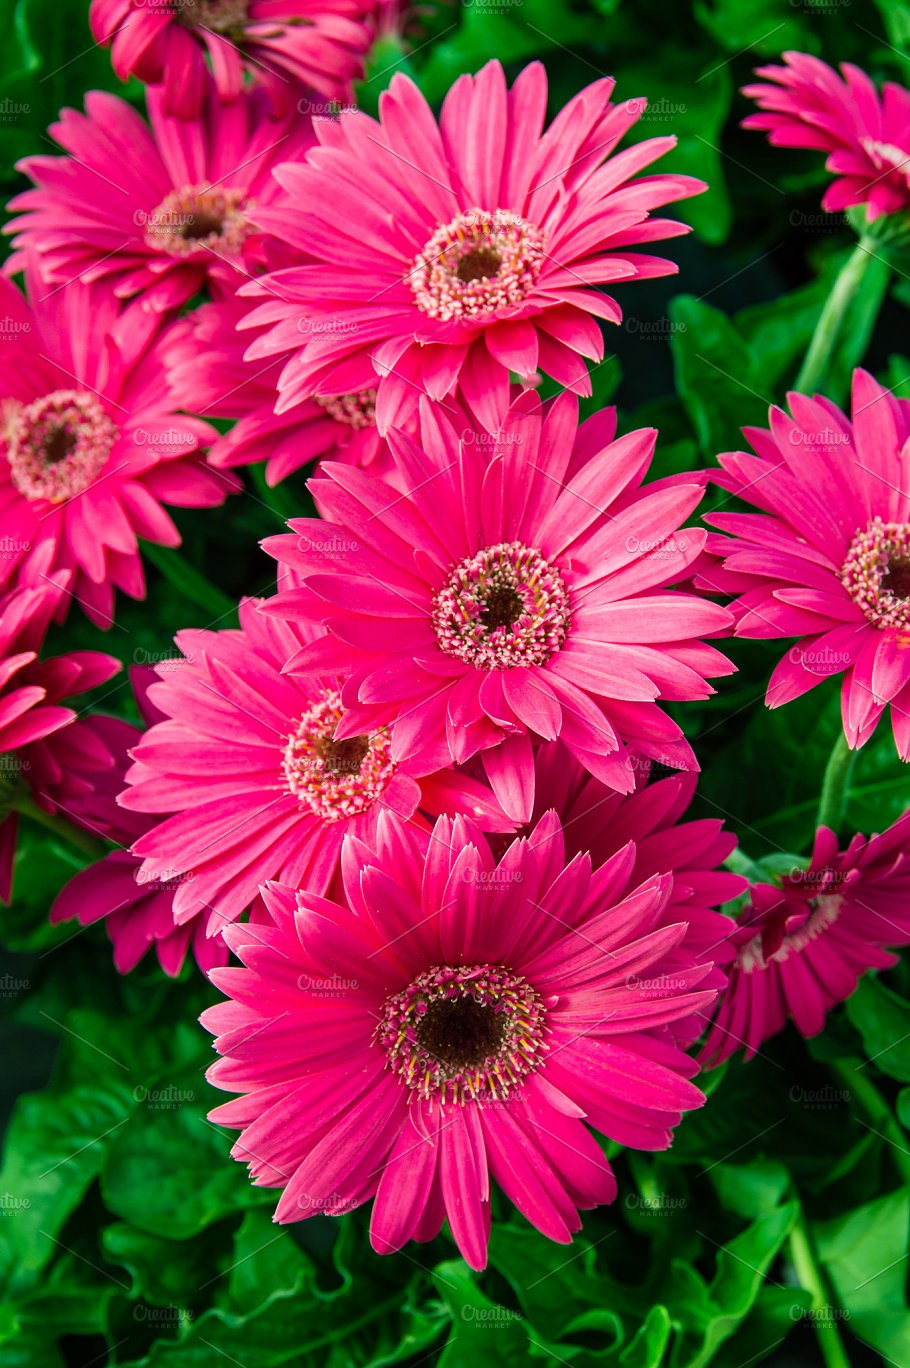 Pink Gerbera Daisy Flowers In Bloom Nature Photos Creative